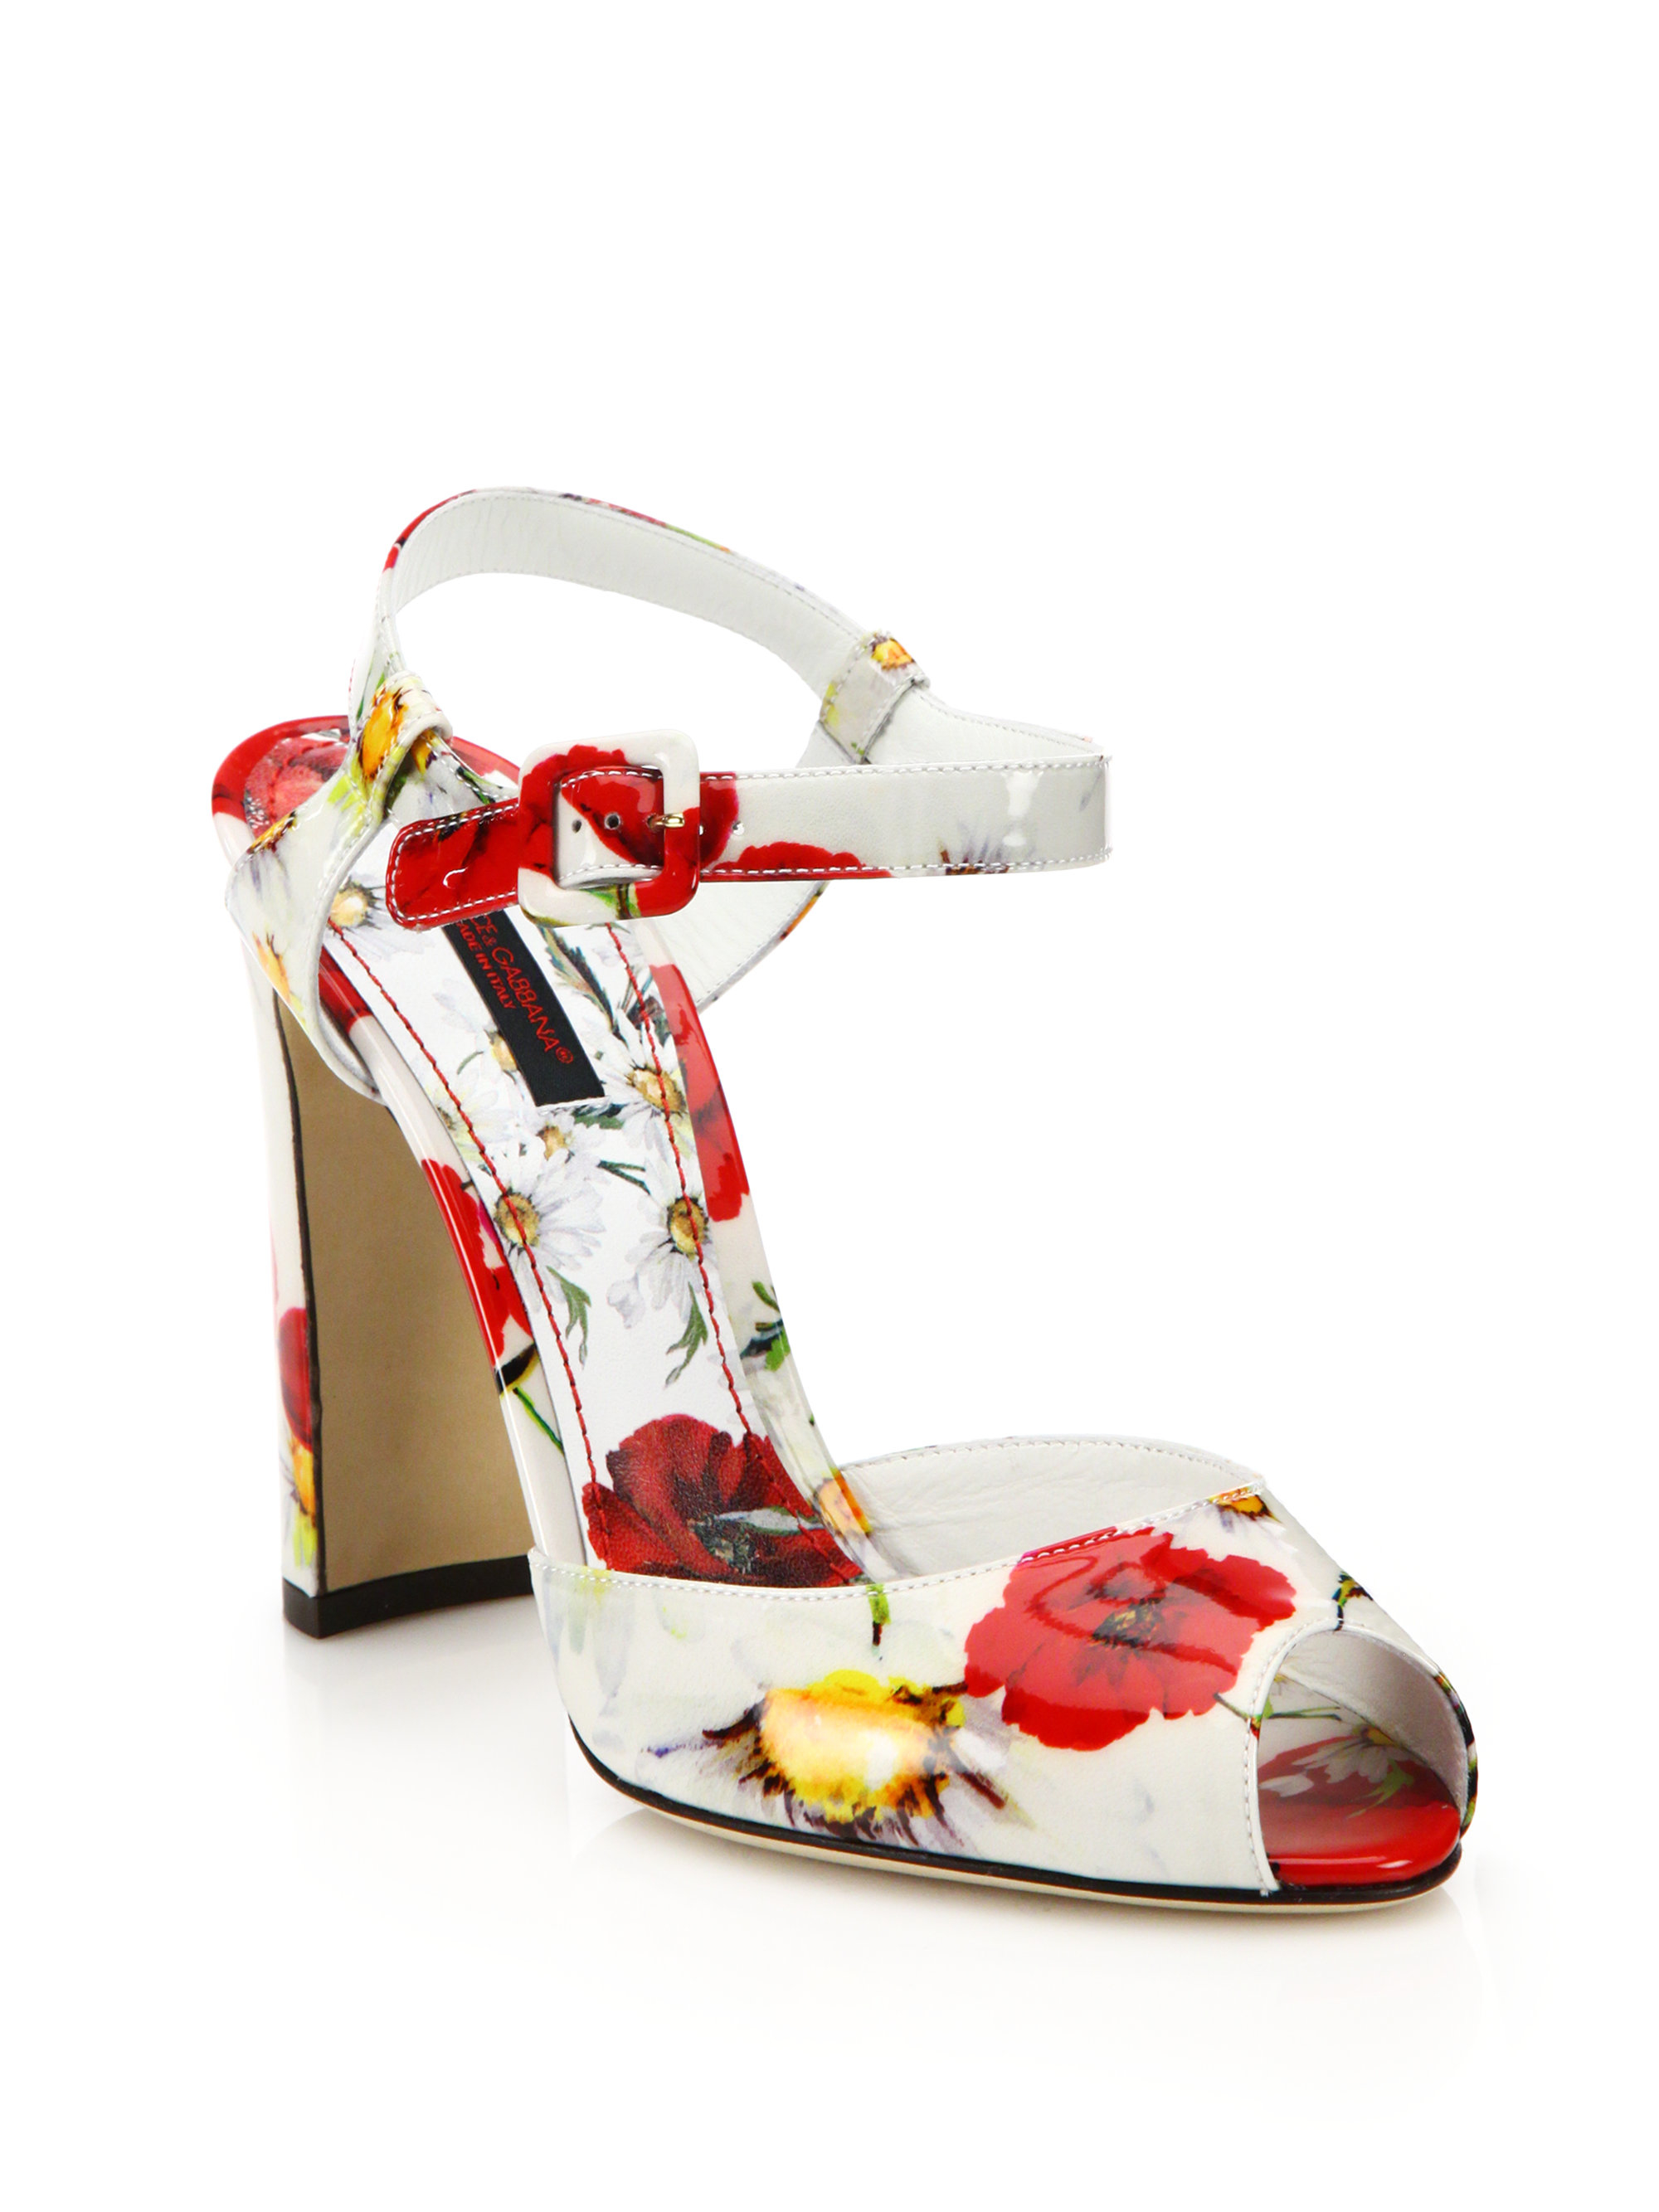 Dolce & Gabbana Printed Leather Sandals cheap in China recommend for sale cheap prices reliable 7LIPnjK1s